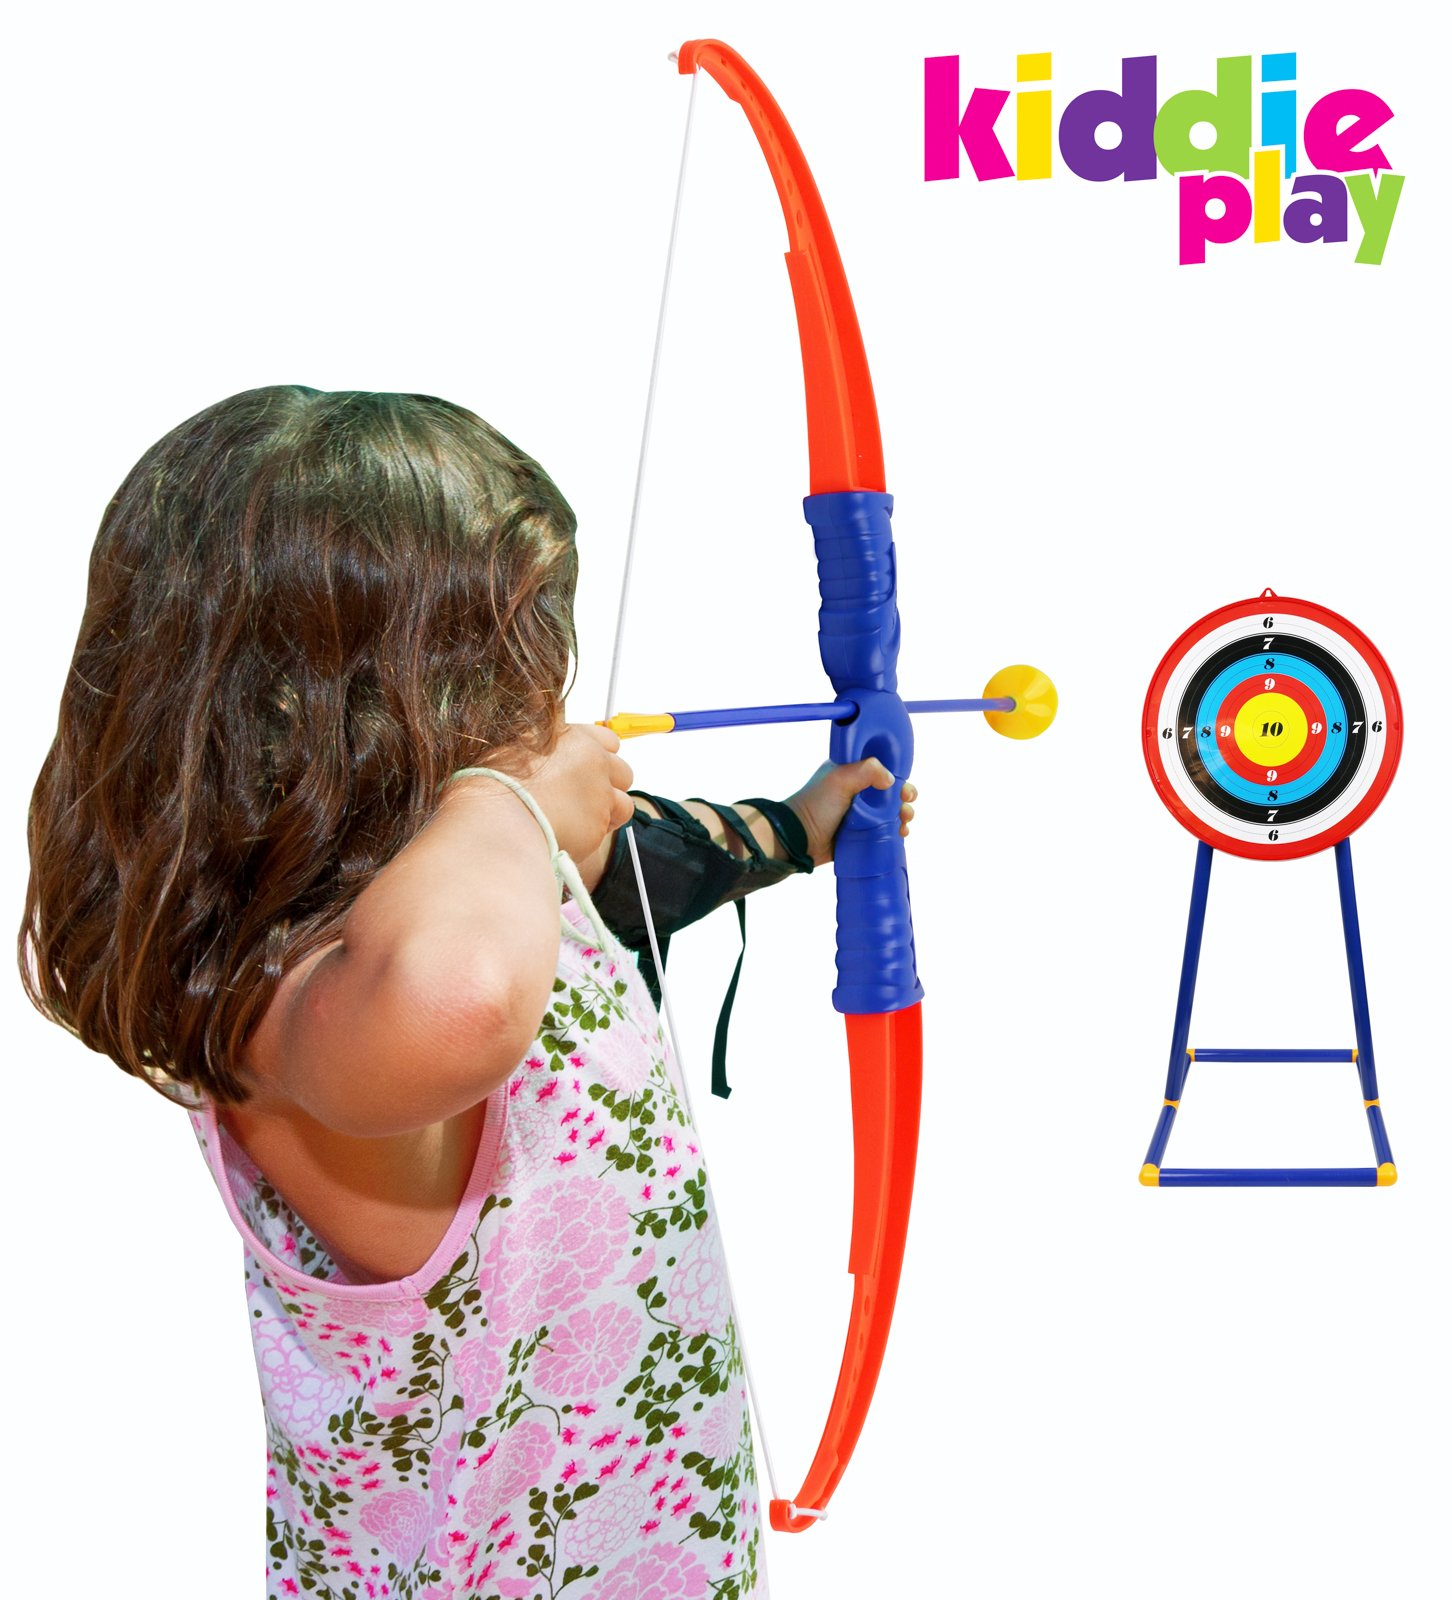 Kiddie Play Toy Archery Set for Kids with Target Bow and Arrow Kids Toys Age 5, 6, 7, 8, 9 Years Old Boys and Girls by Kiddie Play (Image #4)